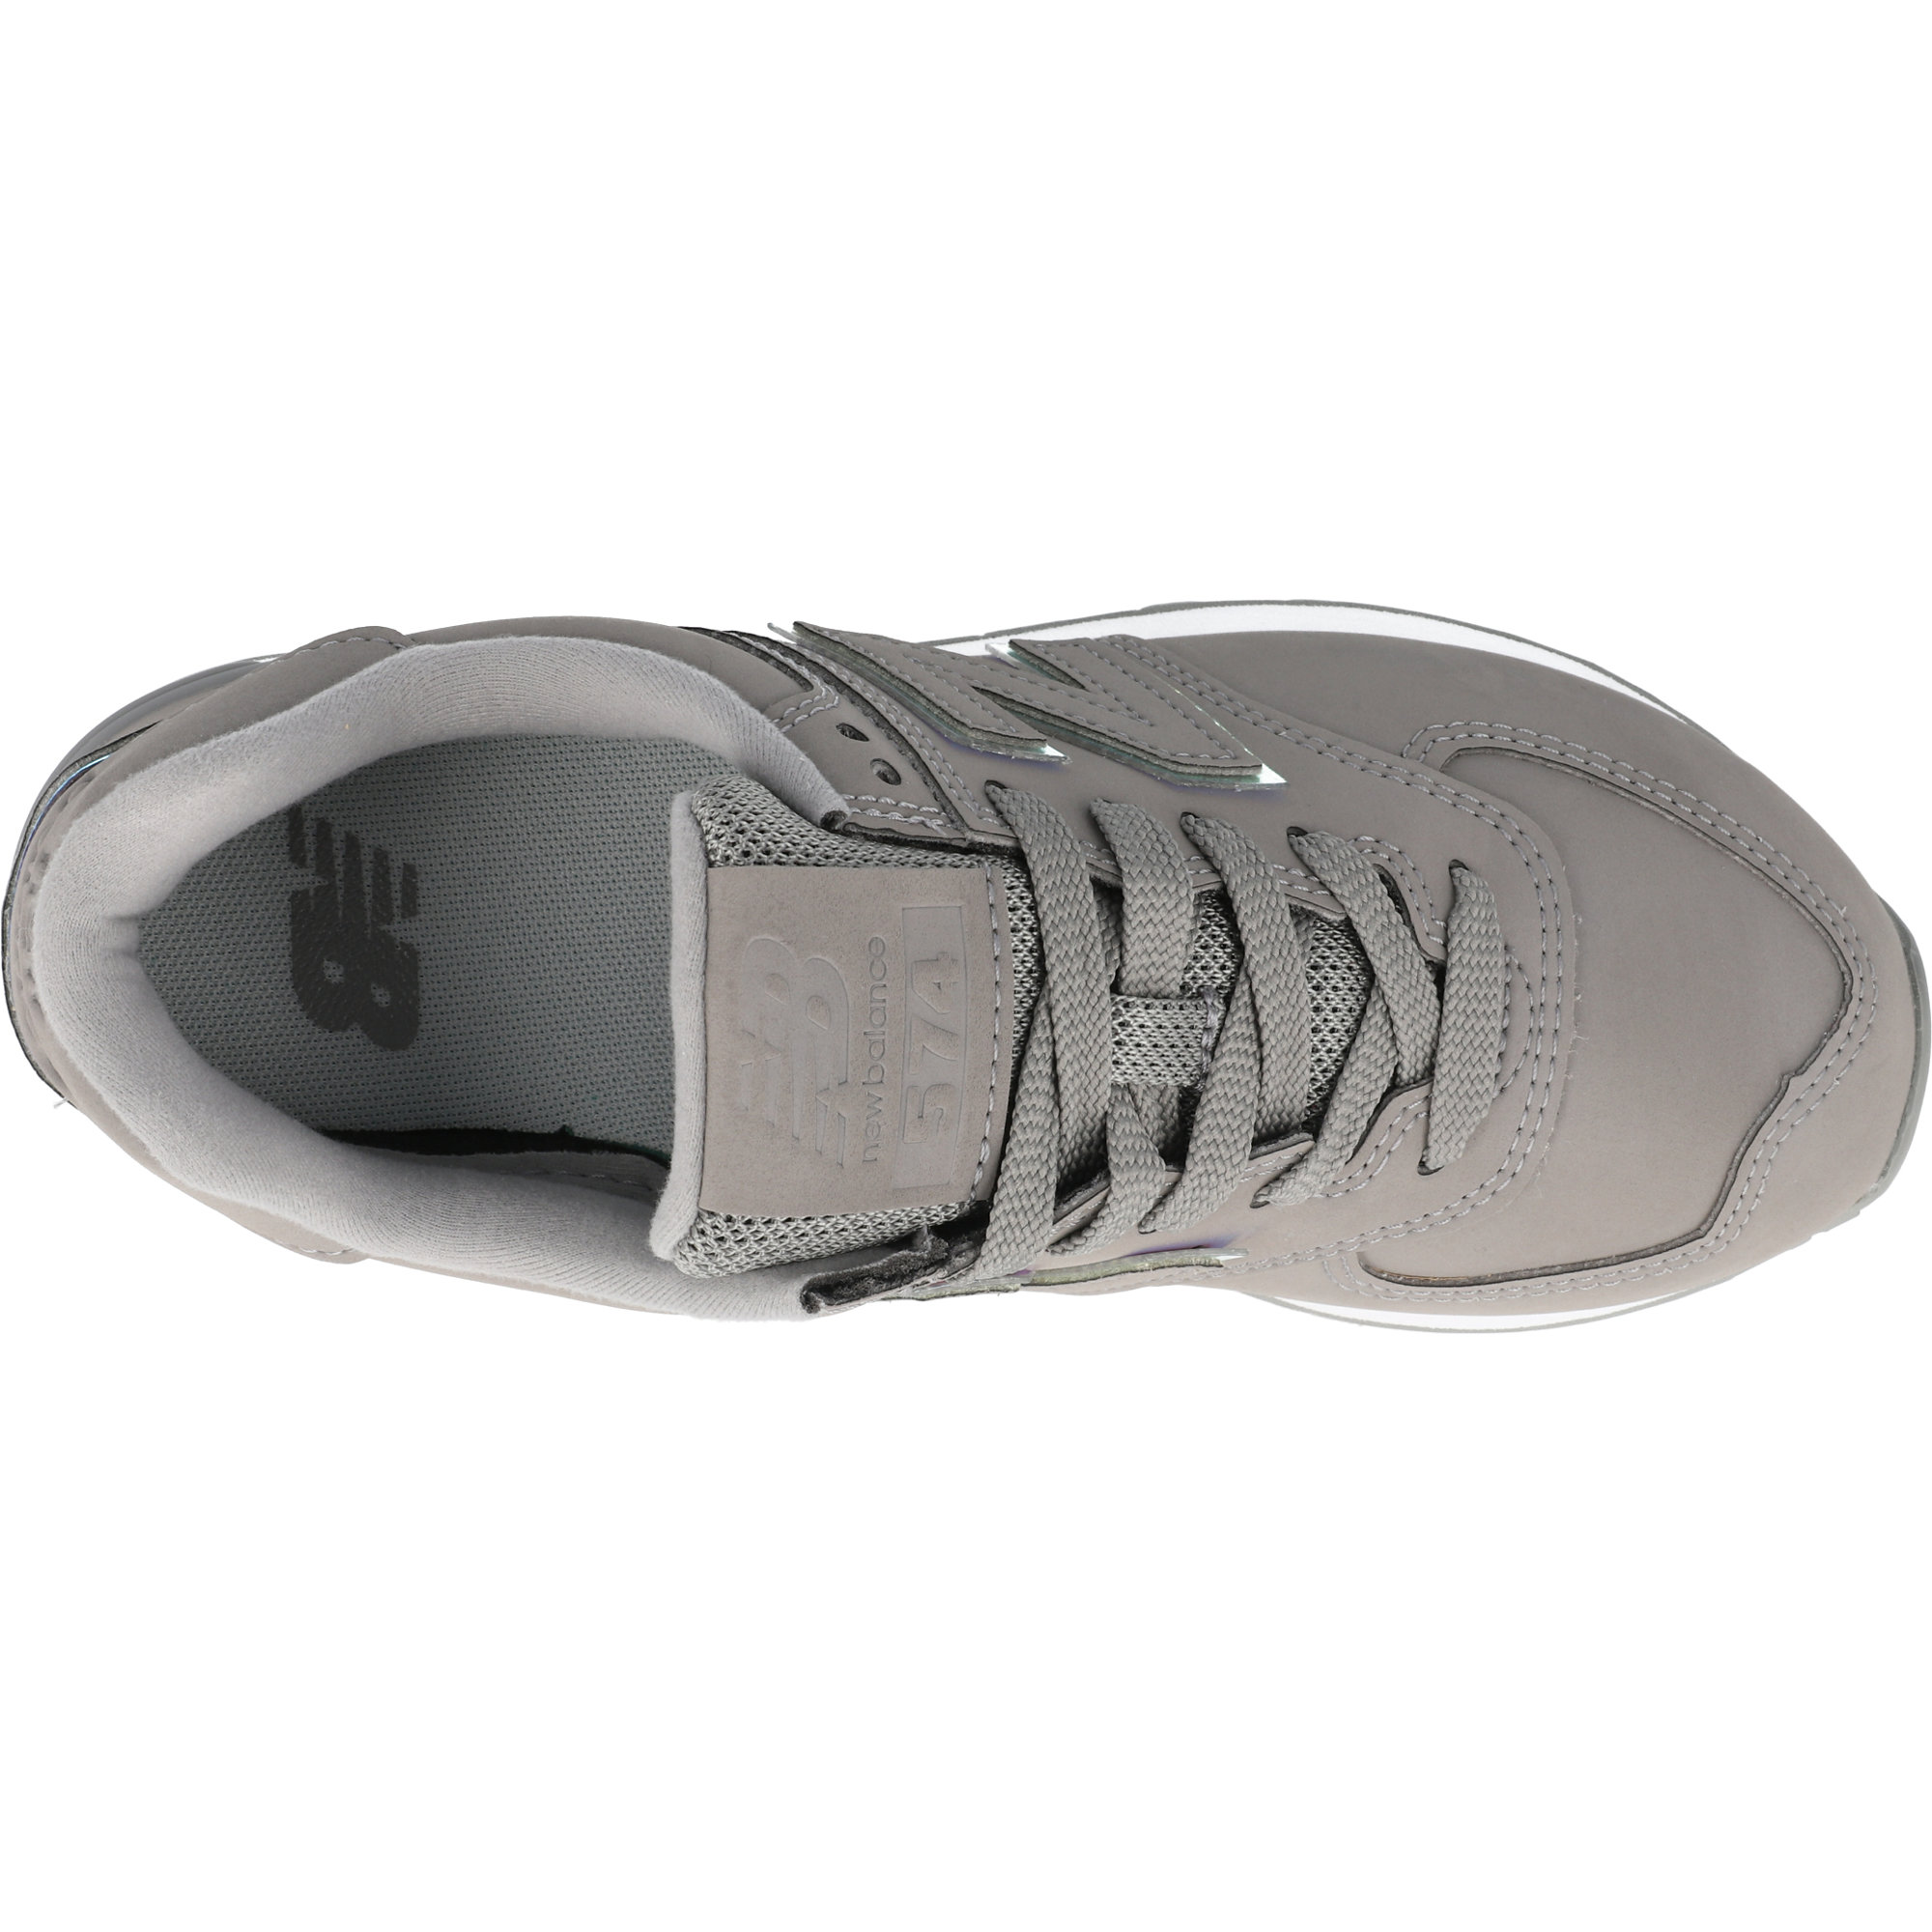 New Balance 574 Black//White Suede Adult Trainers Shoes